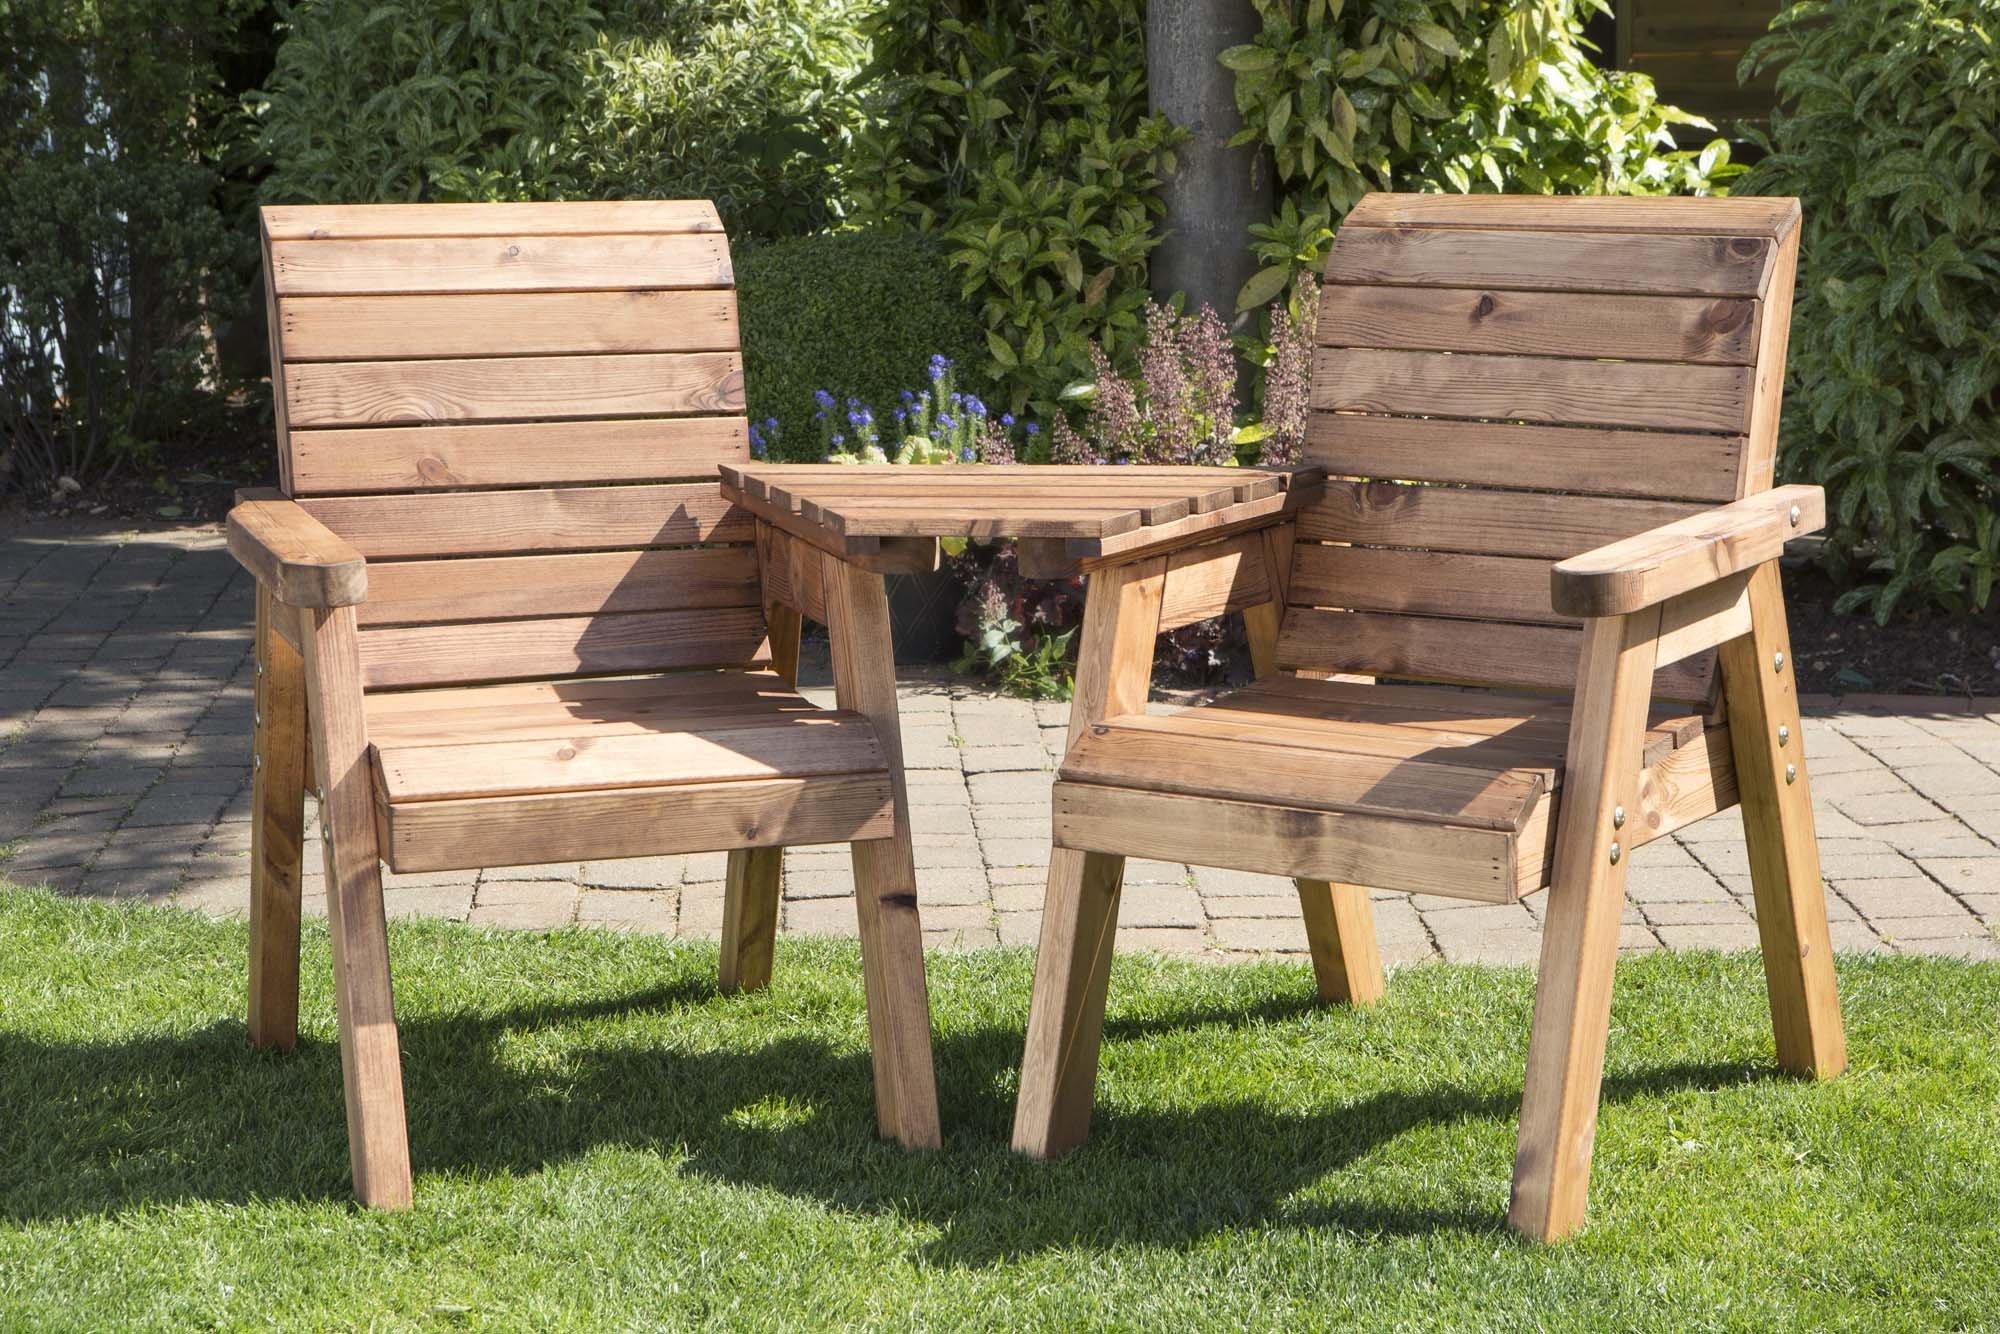 Charles Taylor Hand Made 9 Seater Chunky Rustic Wooden Garden Furniture  Love Seat with Tray Assembled